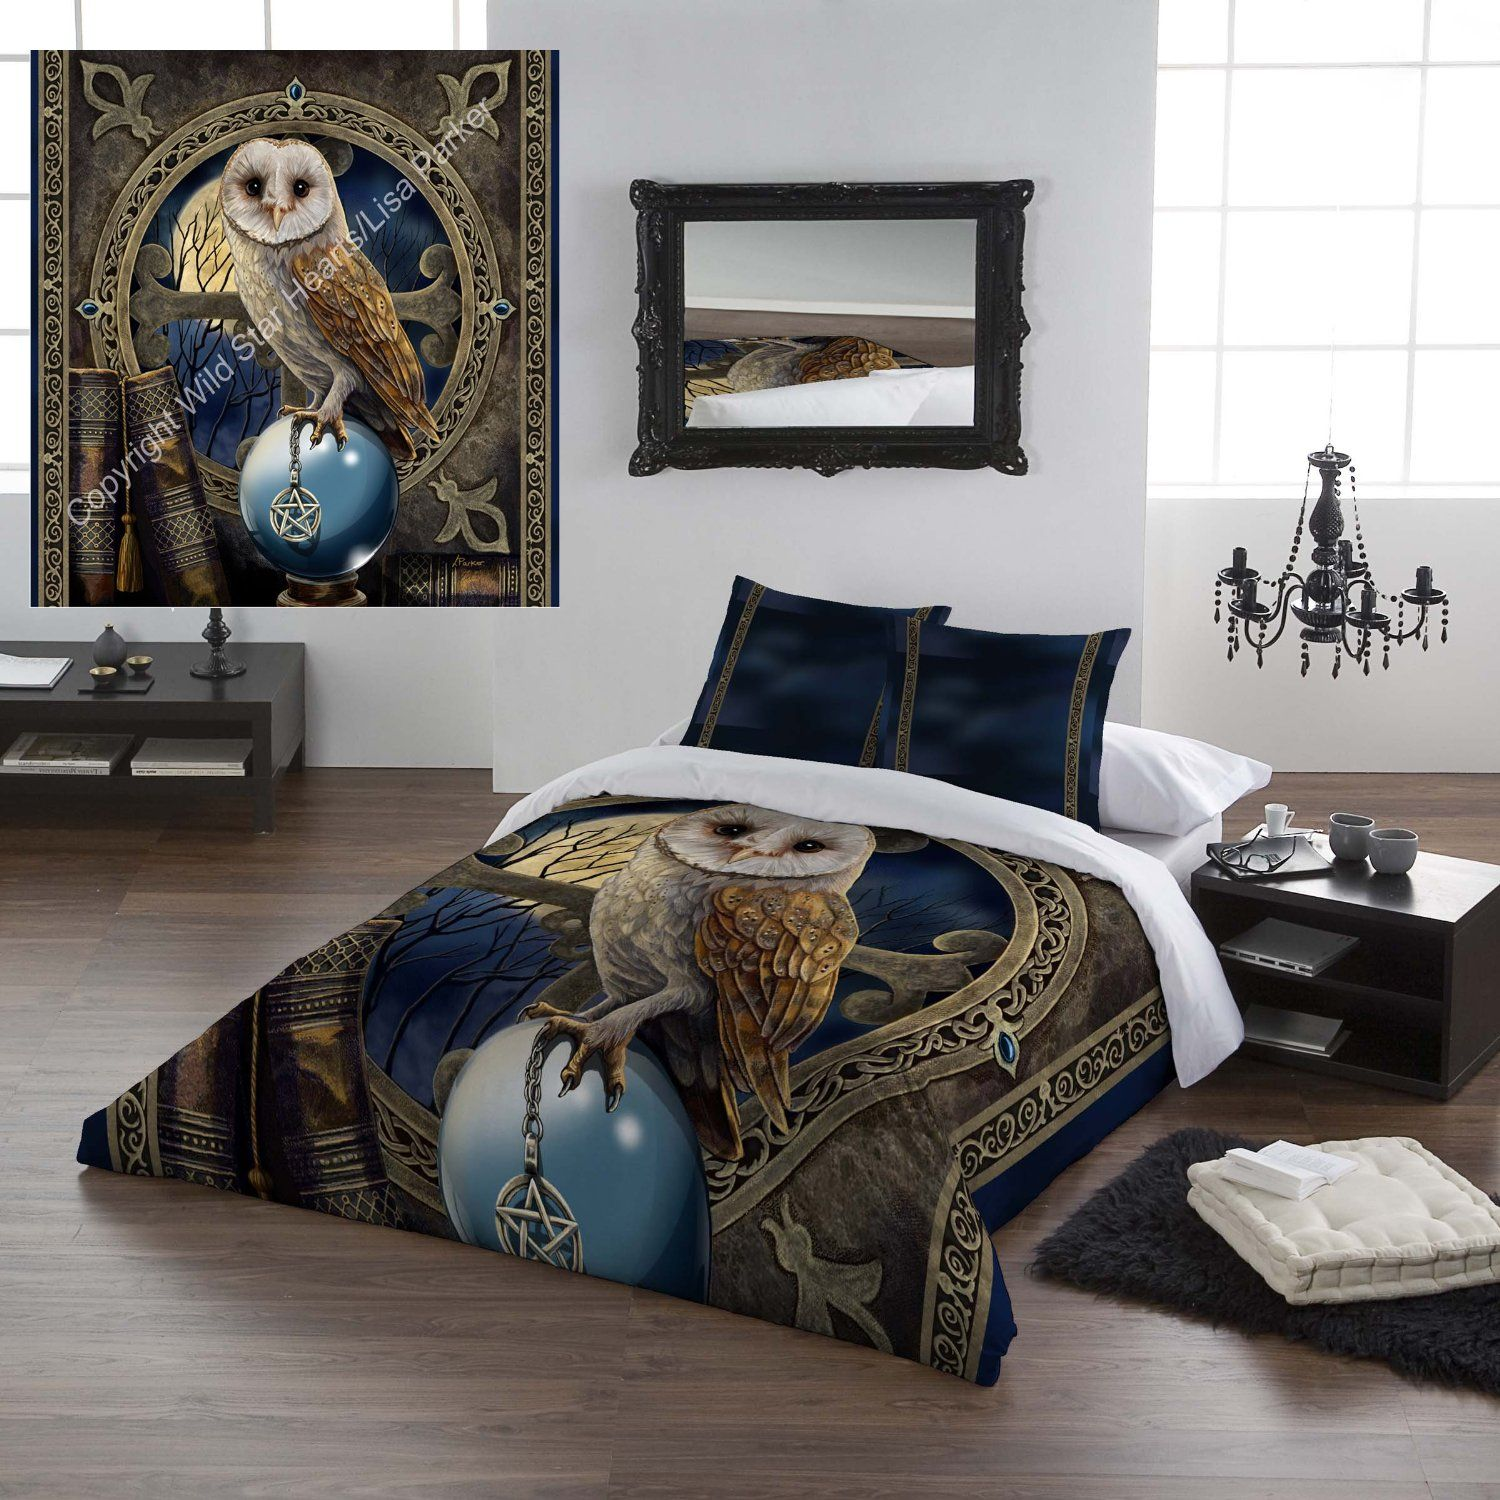 Wild Star Home Duvet Cover Set, Queen Size, The Spell